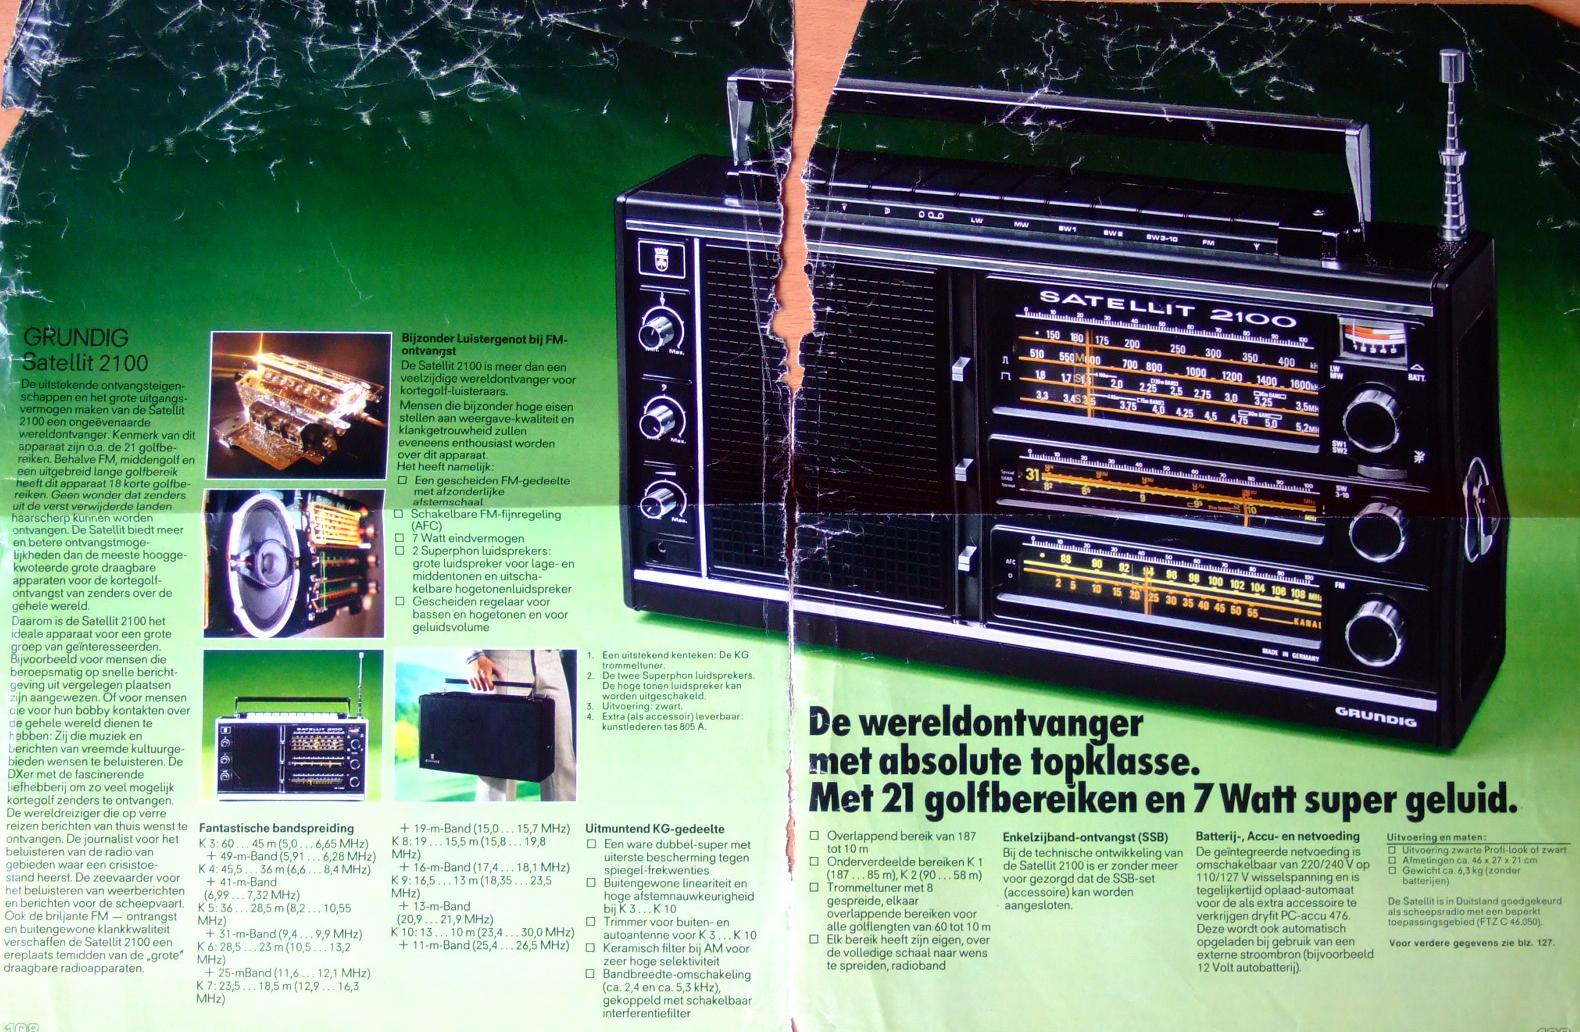 service manual grundig satellit 2000 radio